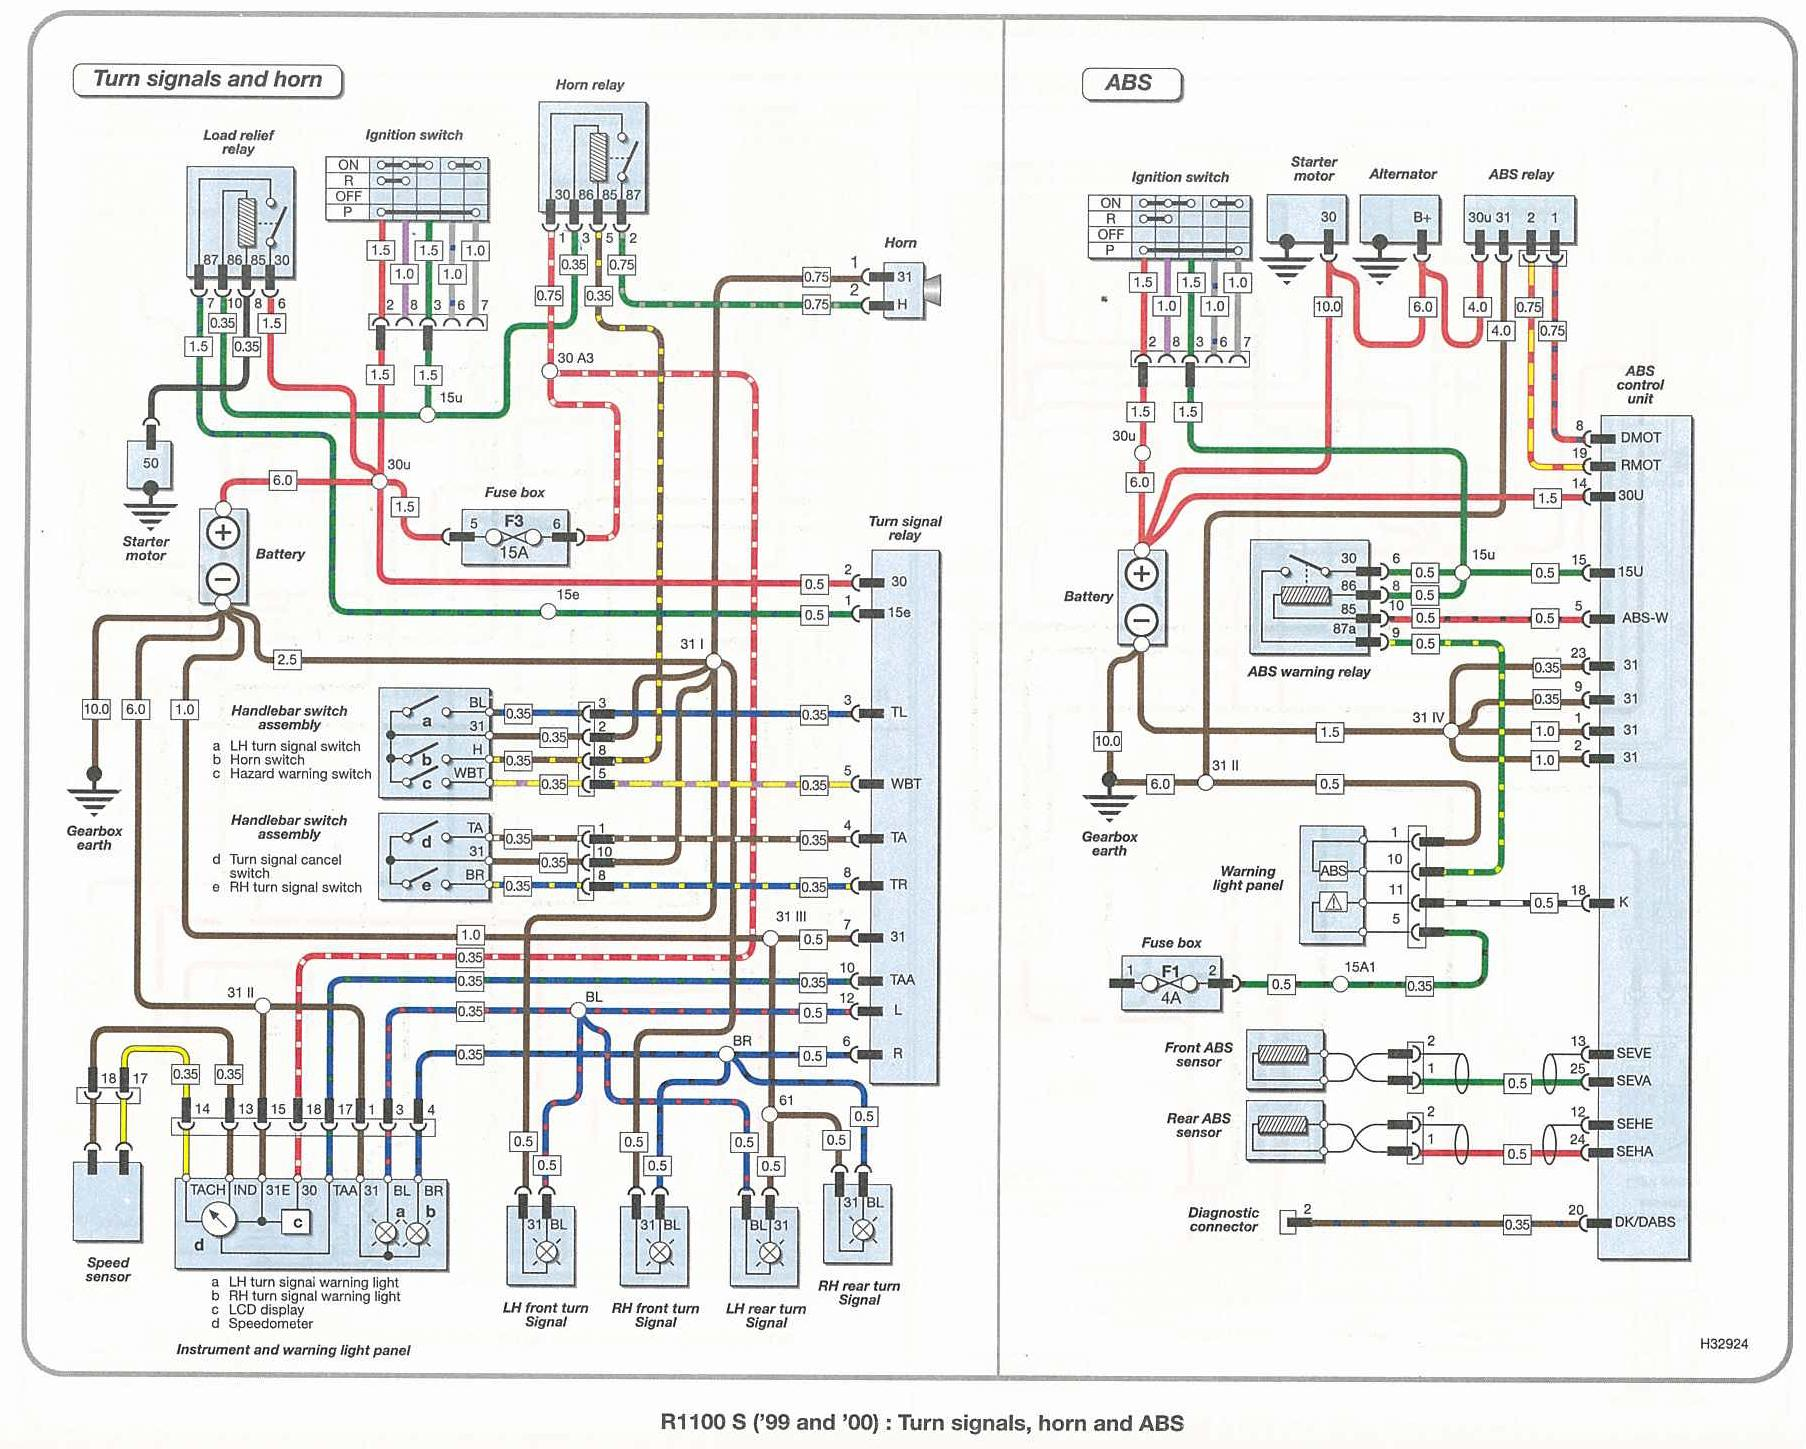 wiring03 bmw wiring diagram bmw wiring diagrams e39 \u2022 wiring diagrams j bmw e90 radio wiring diagram at reclaimingppi.co